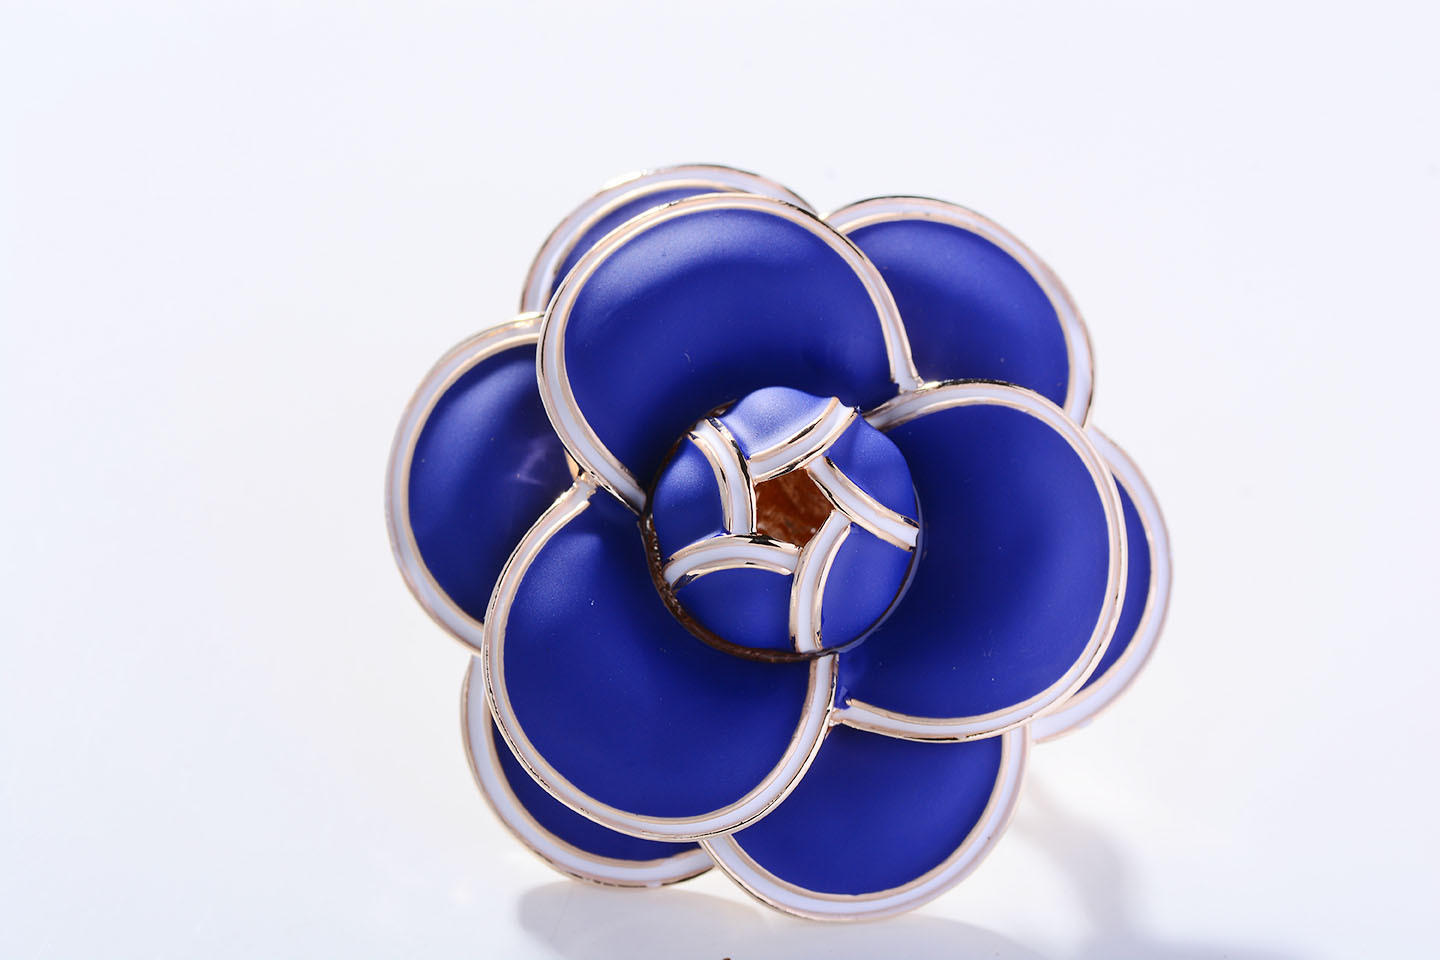 Multicolor Flower Brooch Pin for Women's Enamel Vitage Brooch Jewelry Clothes Scarf Buckle Garment Accessories Fine Jewelry Gift-5